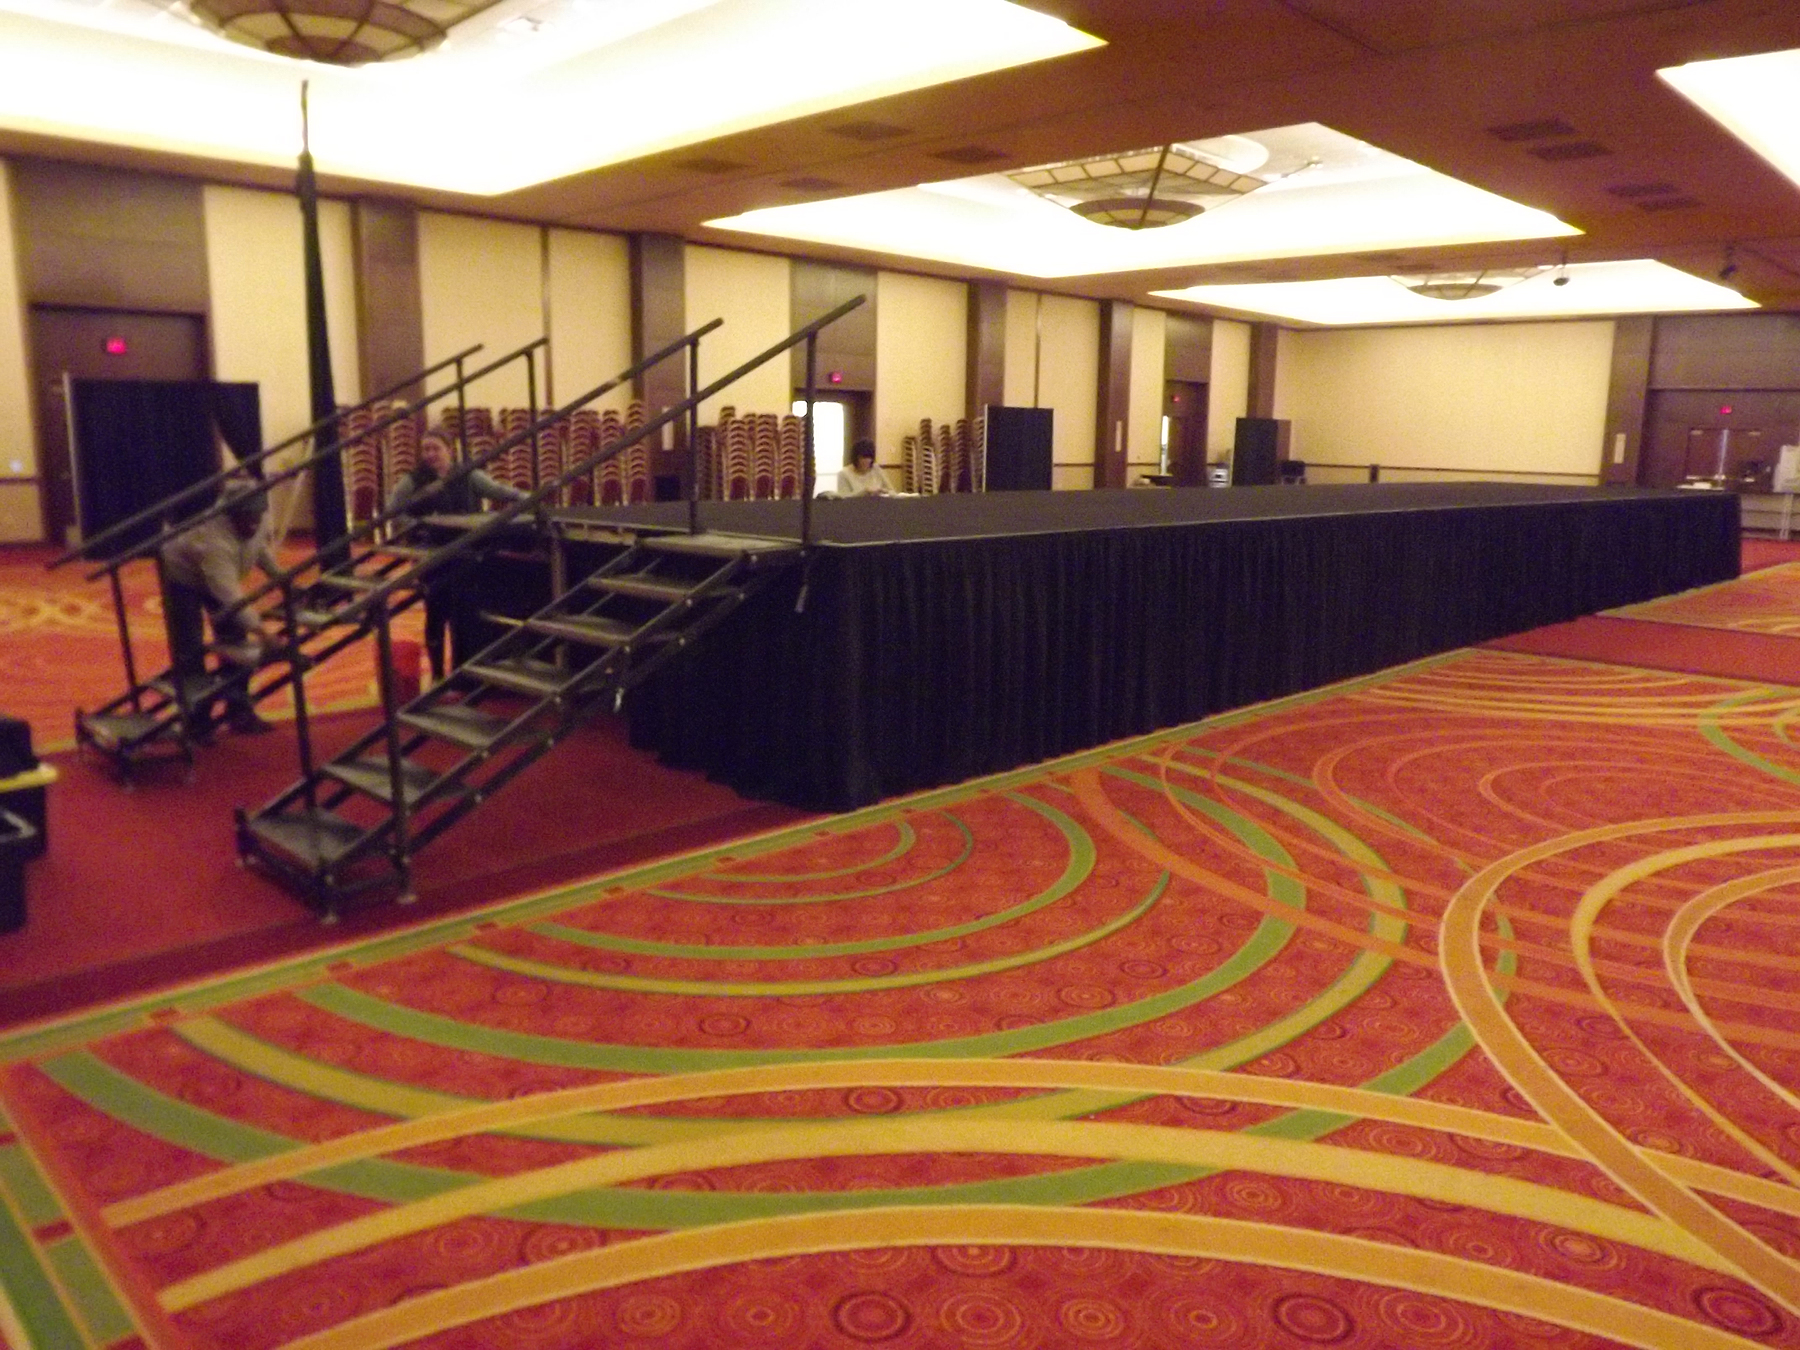 Stairs for Model Runway for Bridal Show